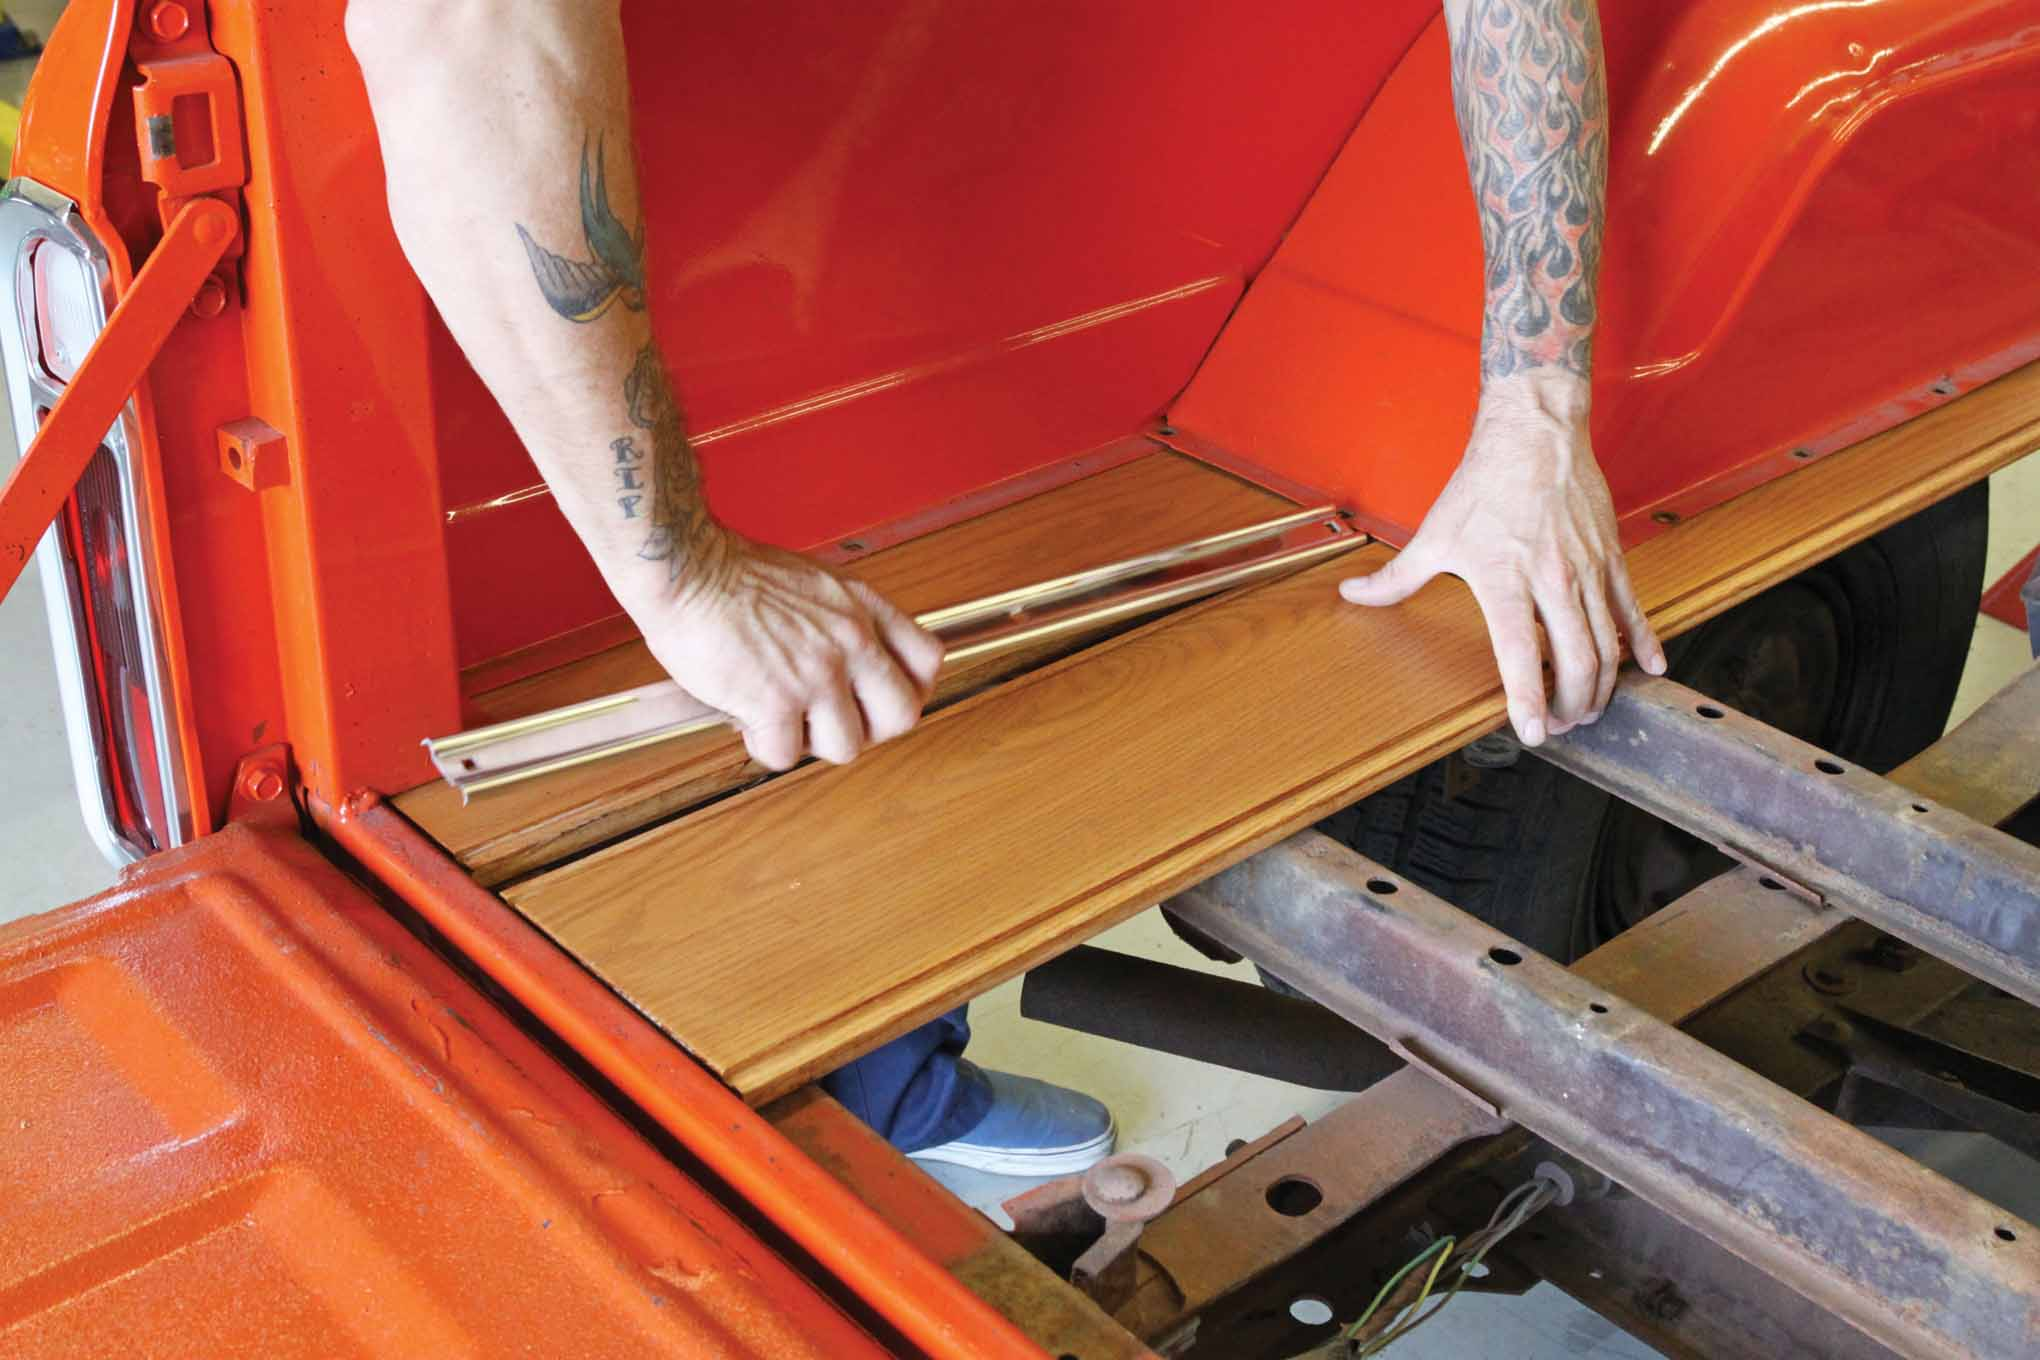 Mount the front and rear short bedstrips into place. Insert the polished stainless ¼-20 carriage bolts through the top to ensure they fit, but do not worry about installing the nuts and washers underneath at this time.